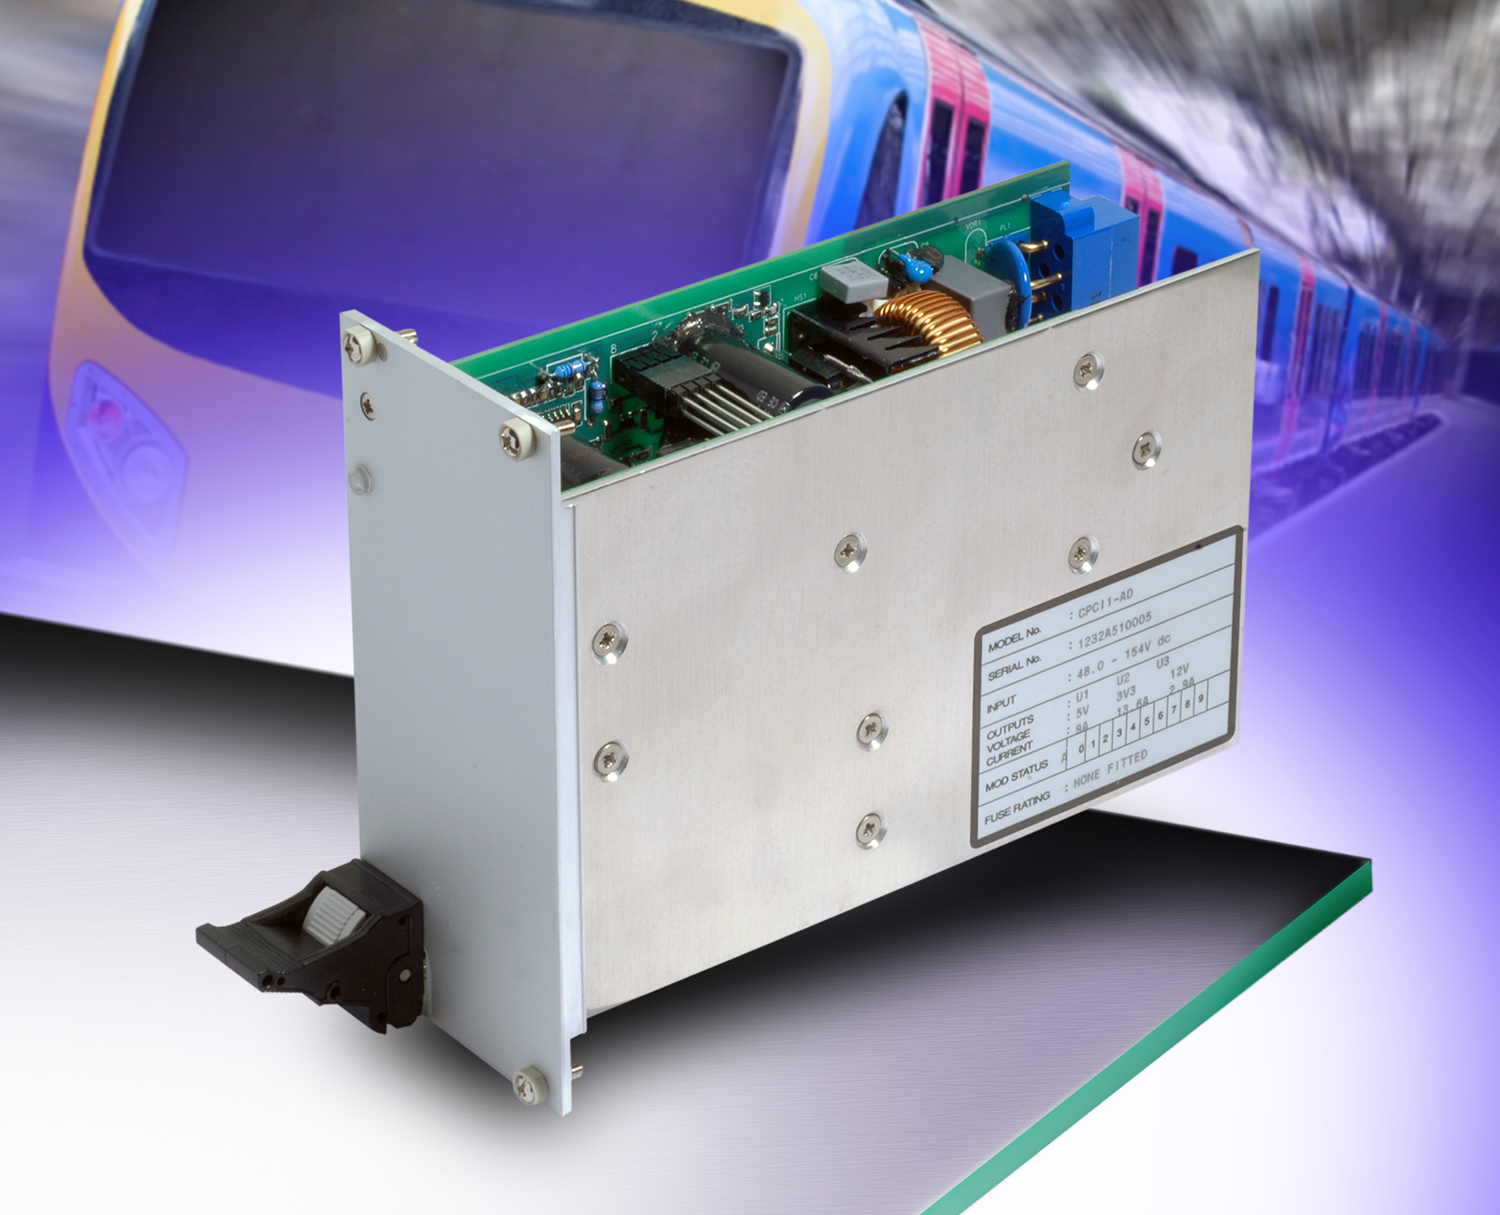 Martek Power offers compact PCI power supply for on-board rail use